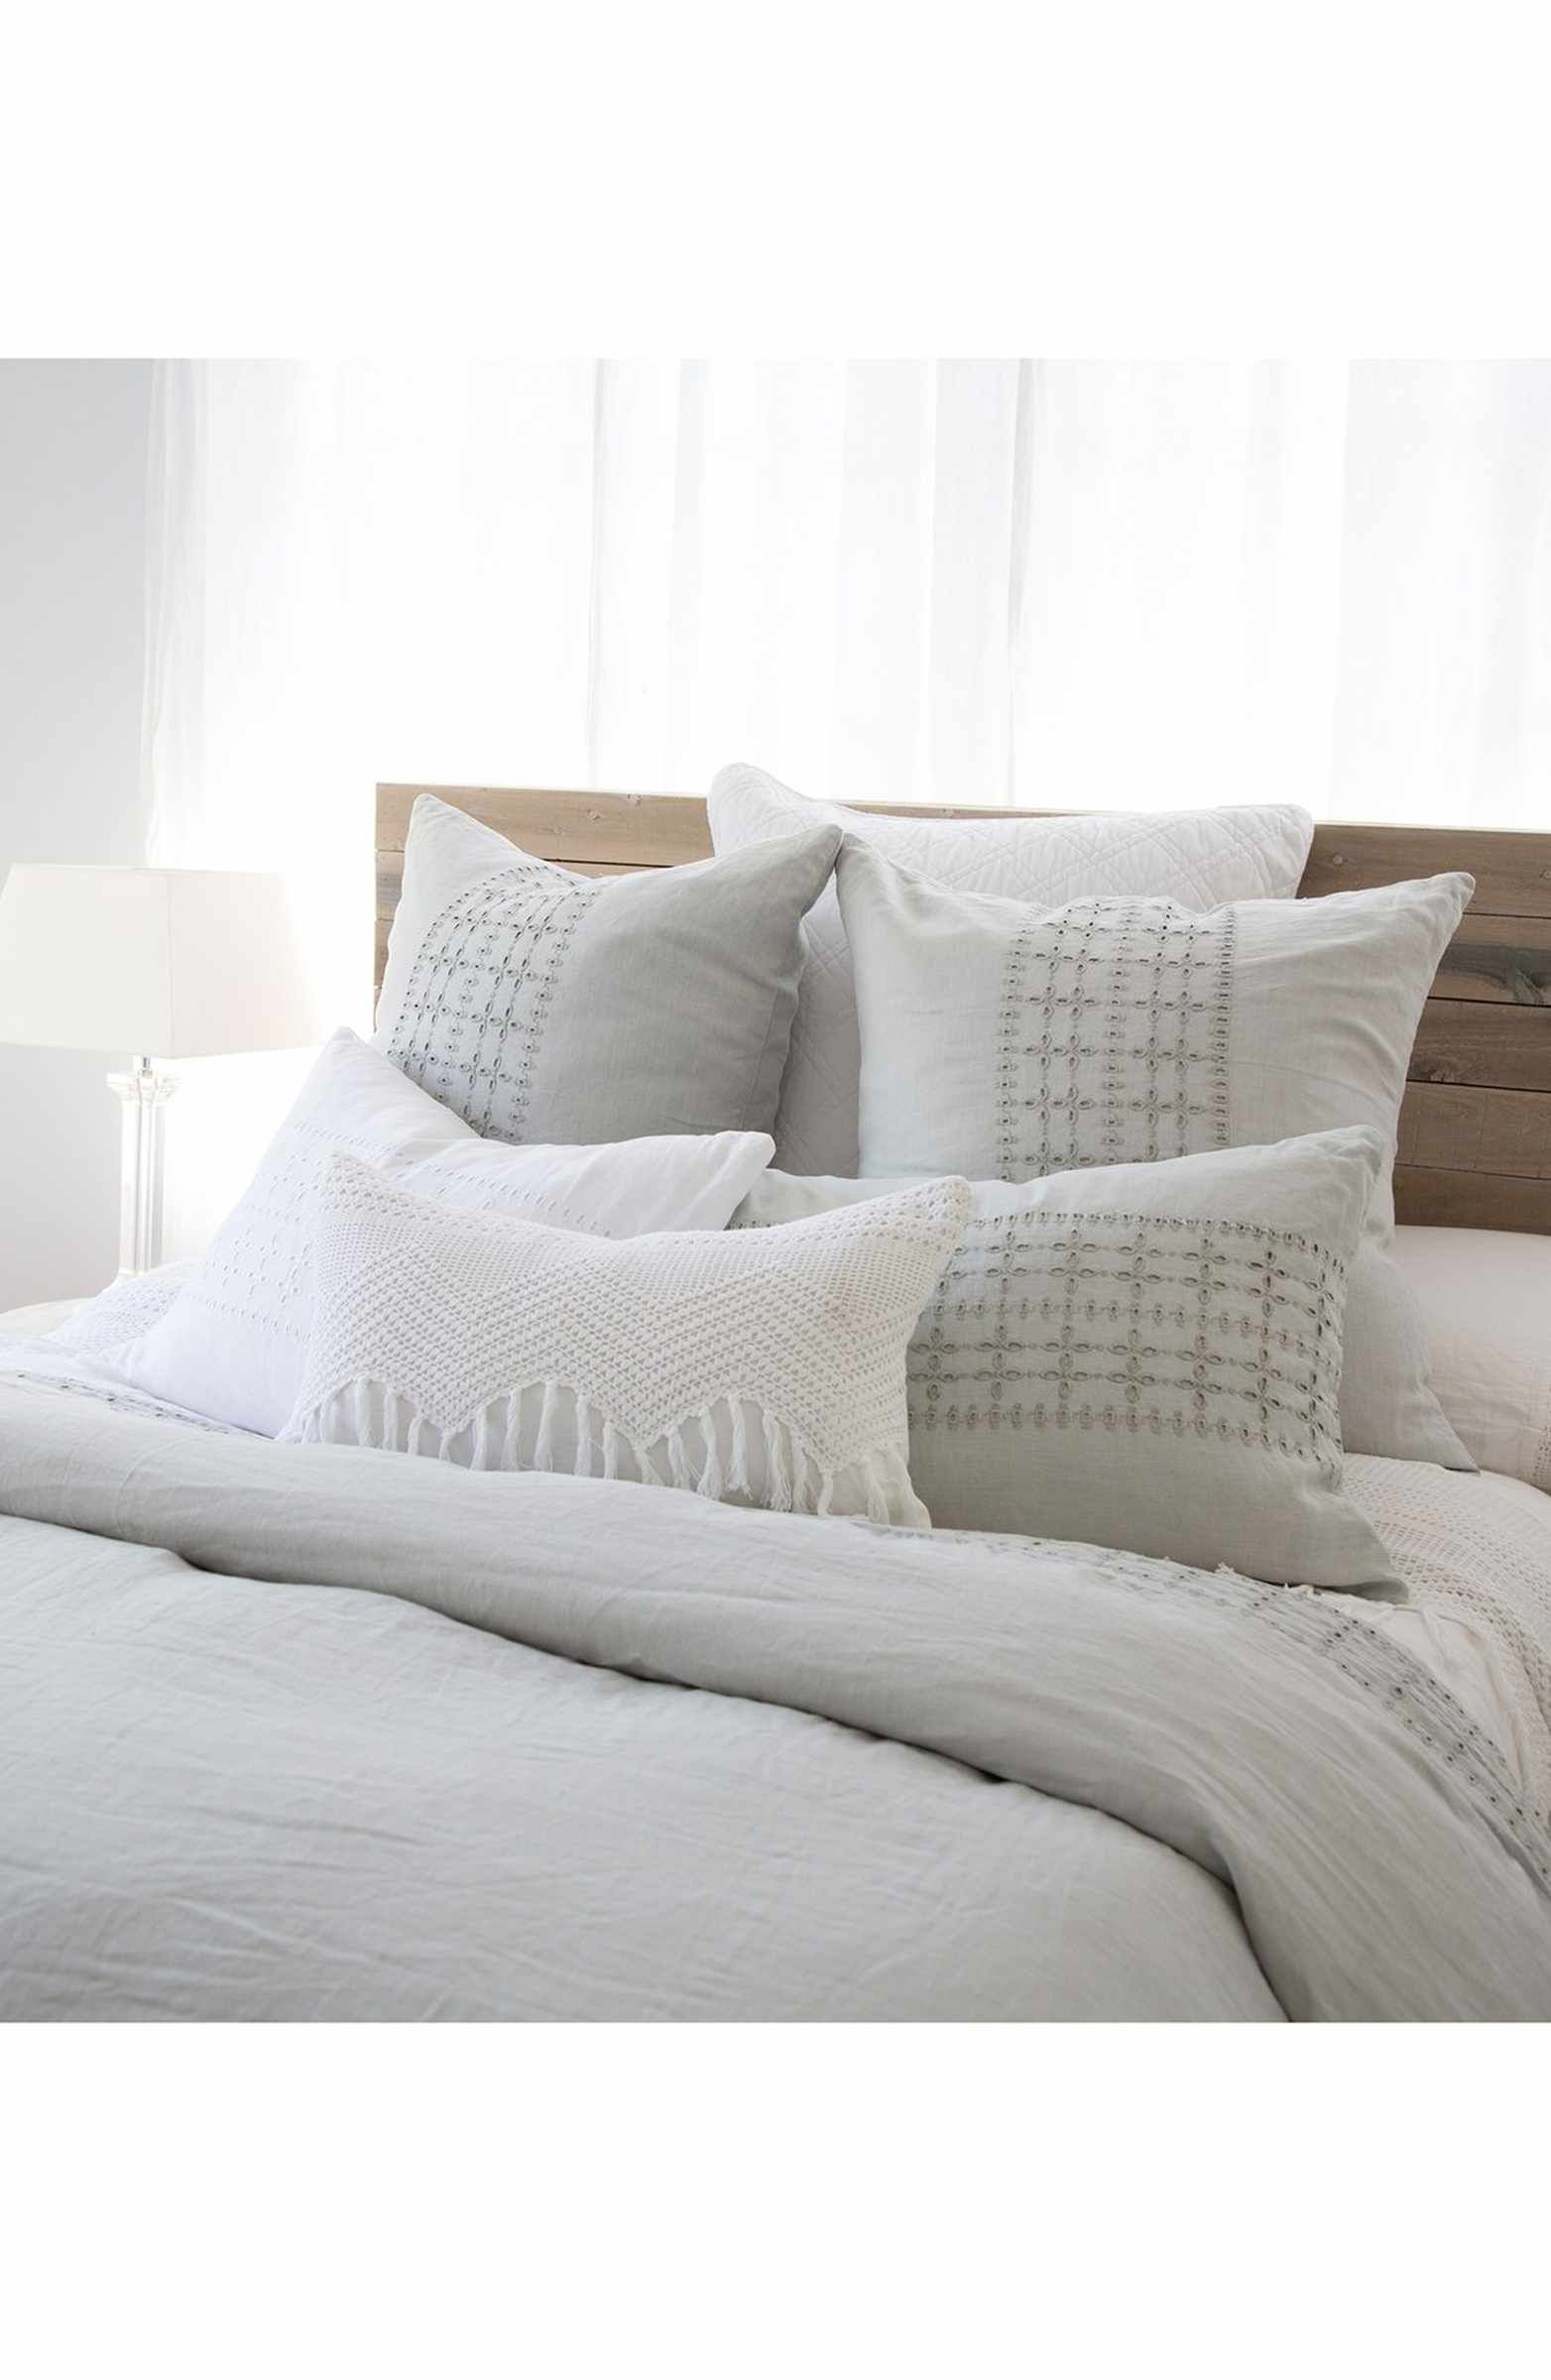 Pom Pom at Home 'Layla' Linen Duvet Cover Bedroom